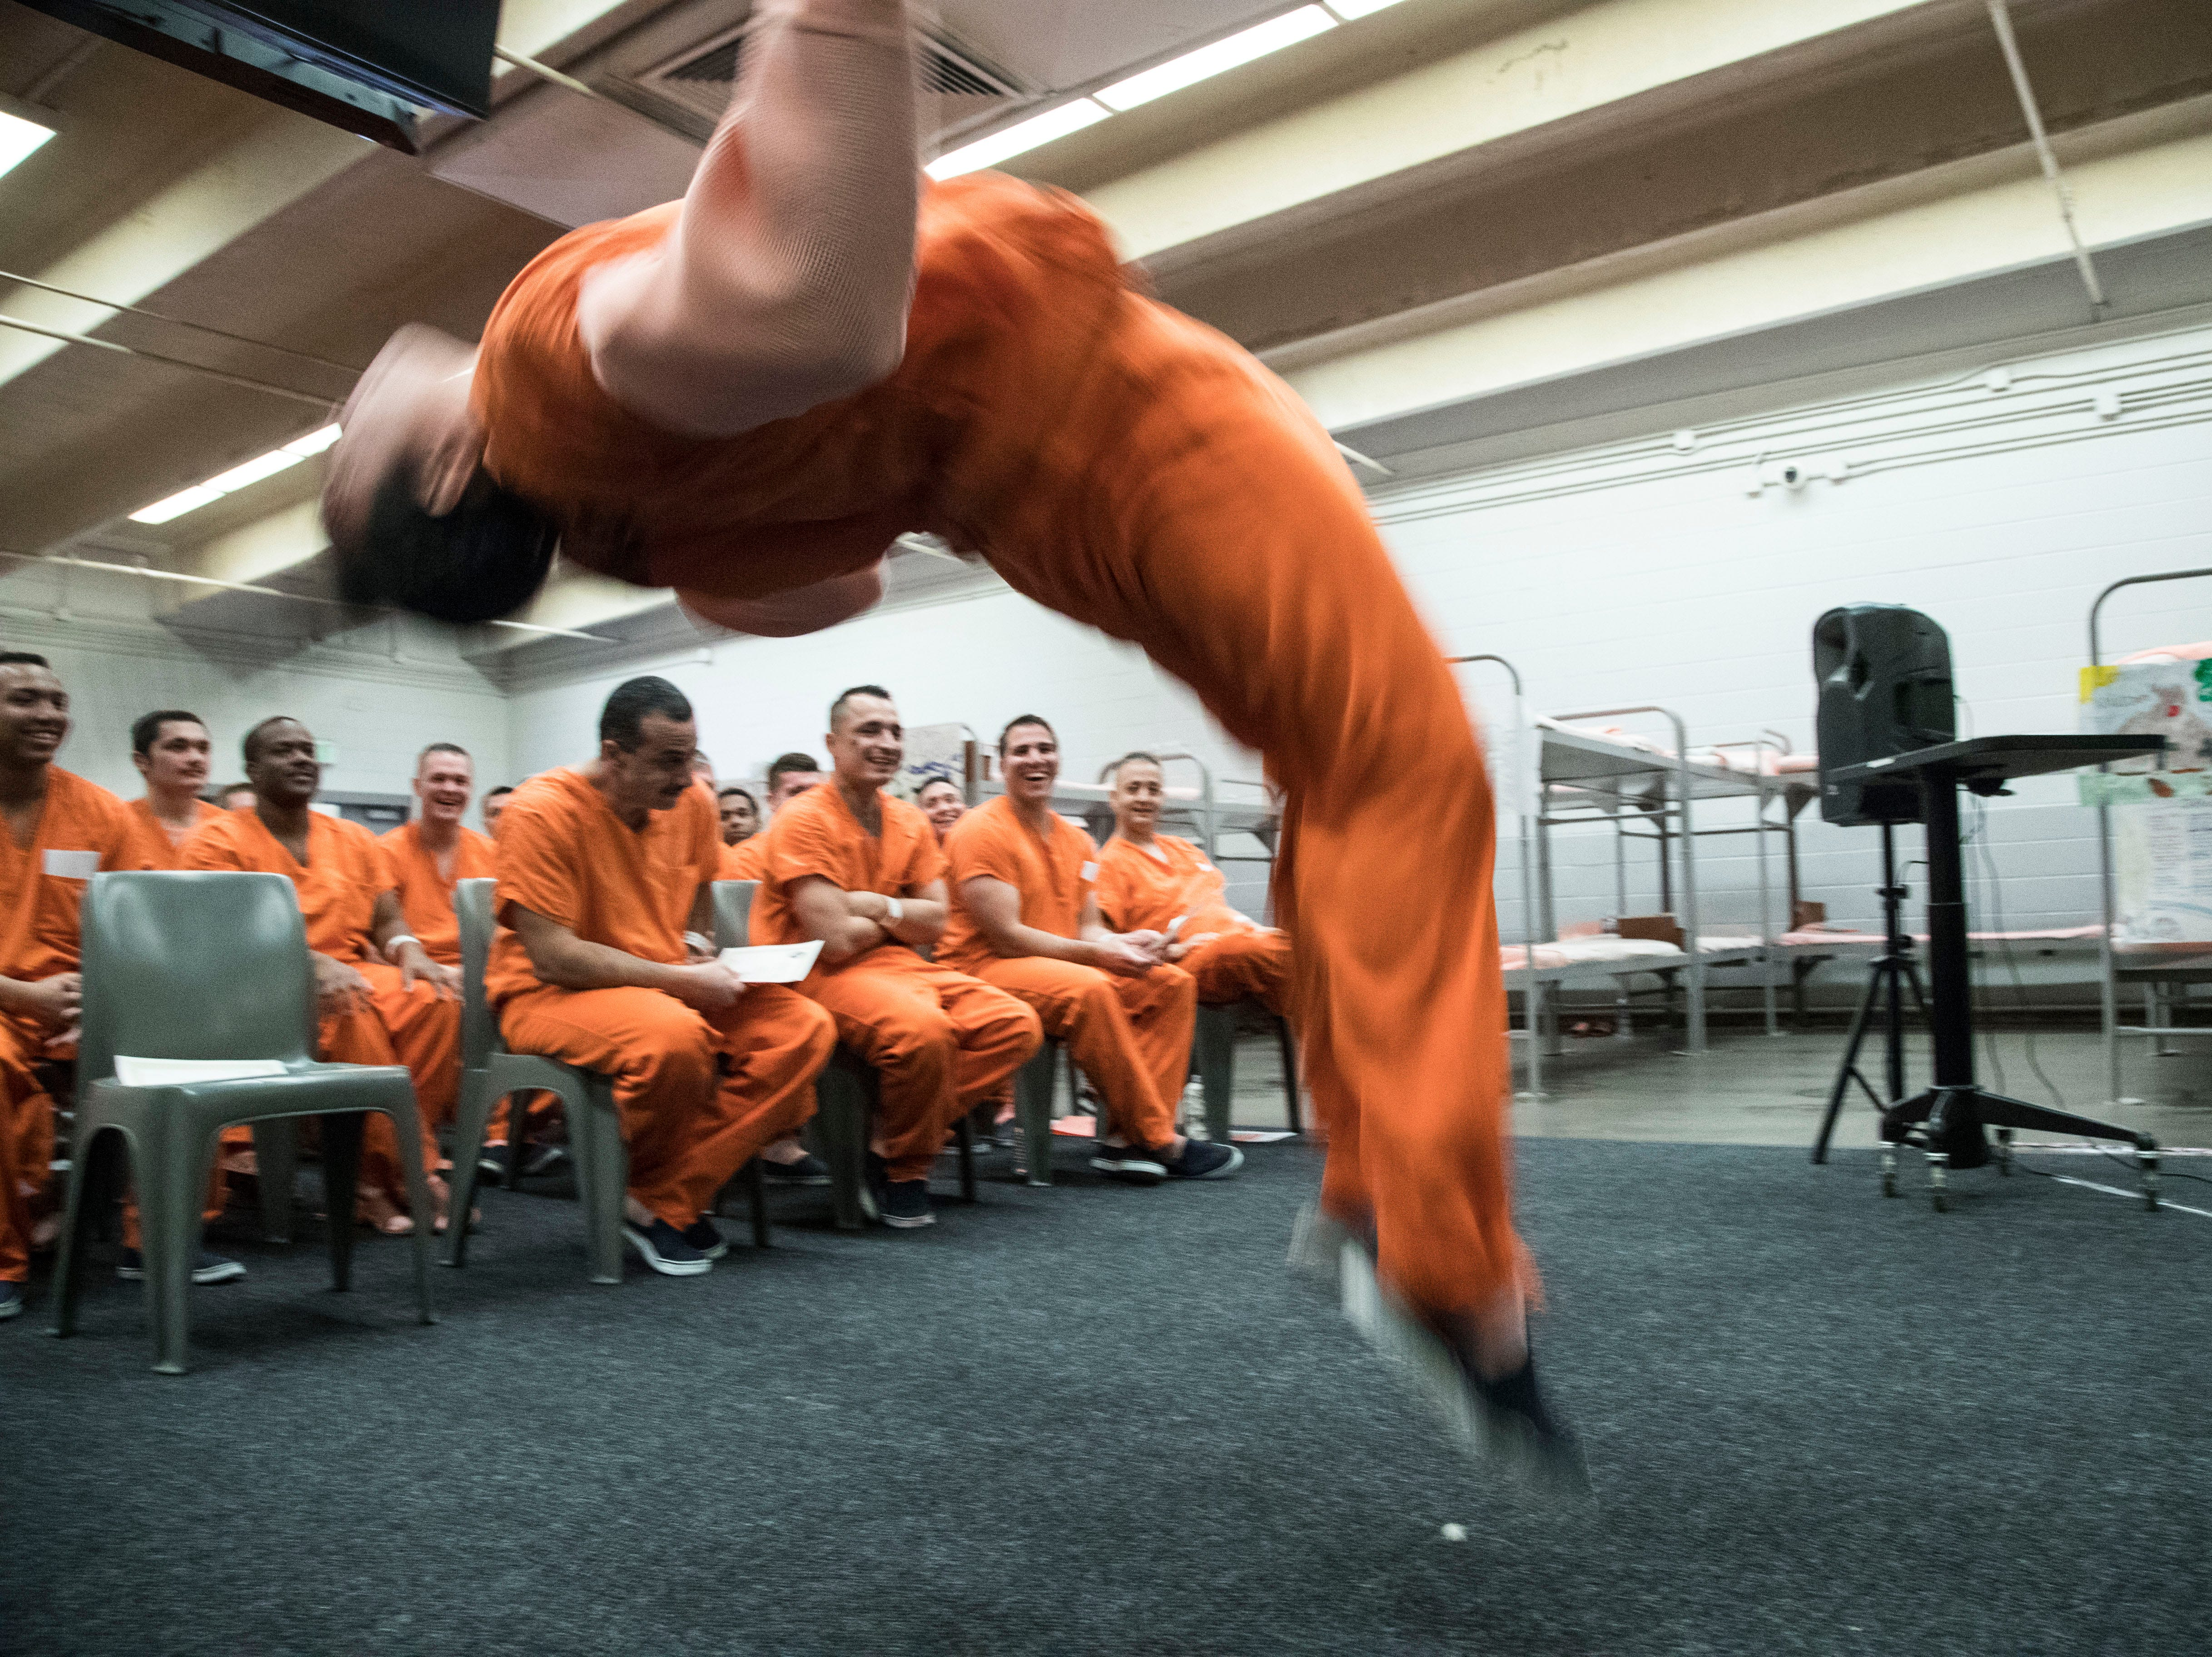 Maricopa County Durango Jail inmates cheer during their graduation from Mosaic, a substance-abuse and mental-health rehabilitation program inside the jail that identifies inmate trauma contributing to their addiction.  An evolution of the longstanding Alpha program, Mosaic leaders say once that trauma is isolated during the seven-week program, and inmates learn better-coping skills, they'll be less likely to start using again.